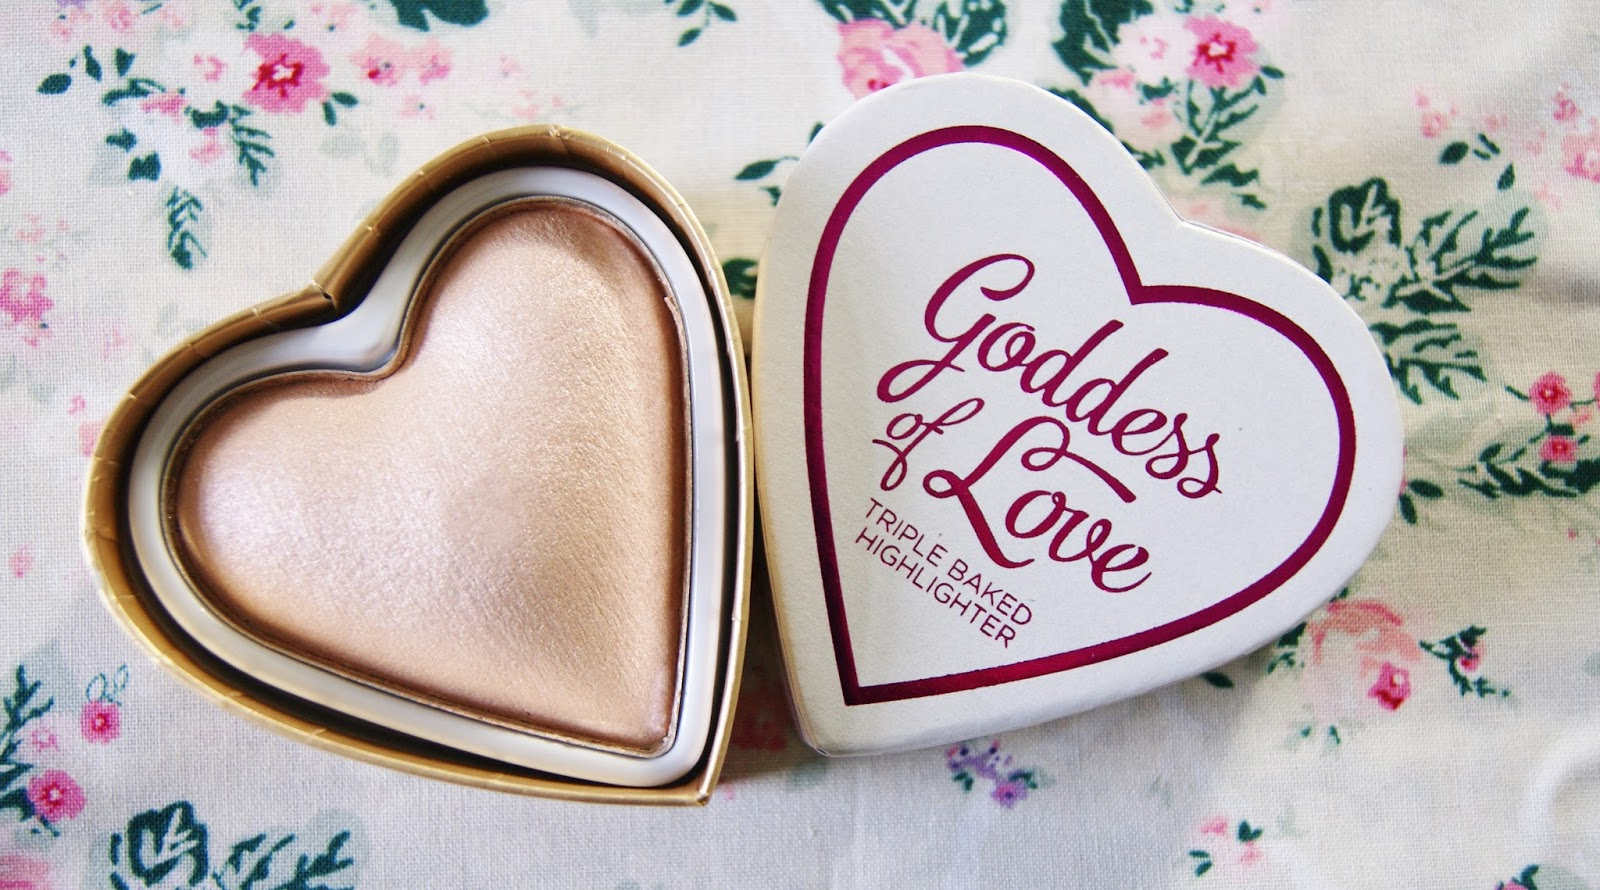 I Heart Makeup Goddess of Love Highlighter